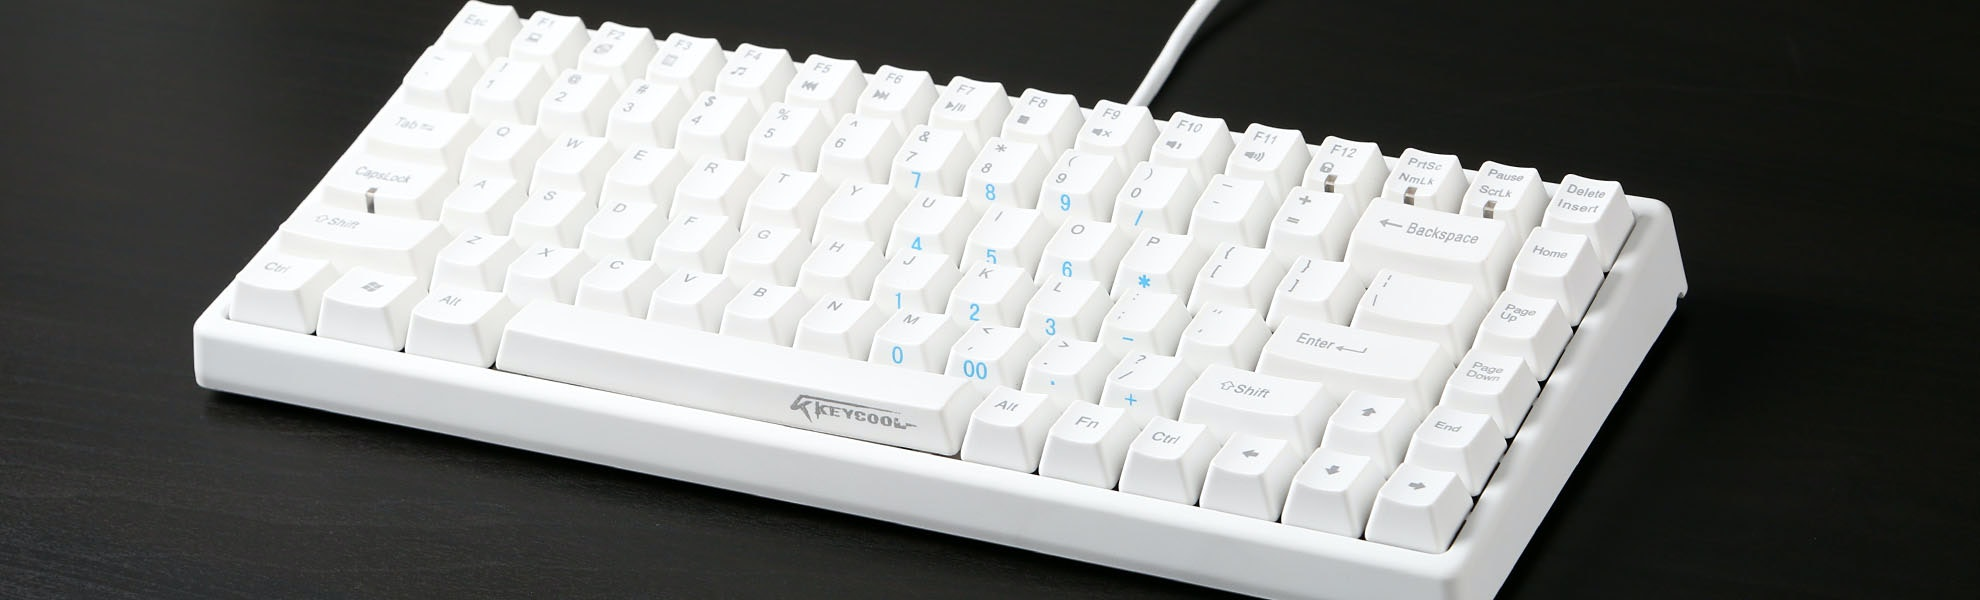 Keycool Hero 84 Mechanical Keyboard